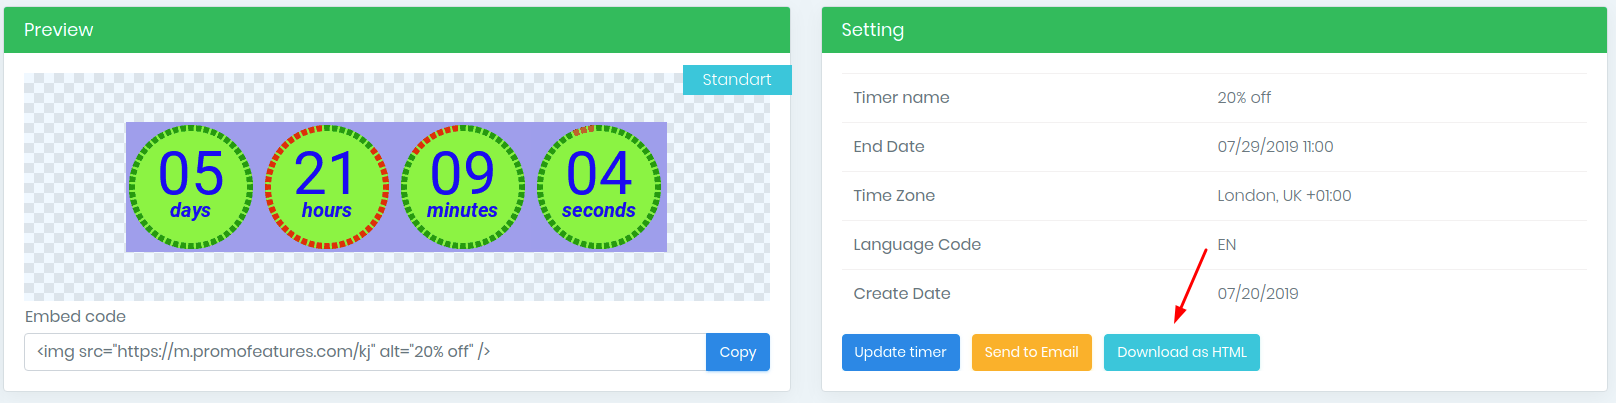 Download timer as Html